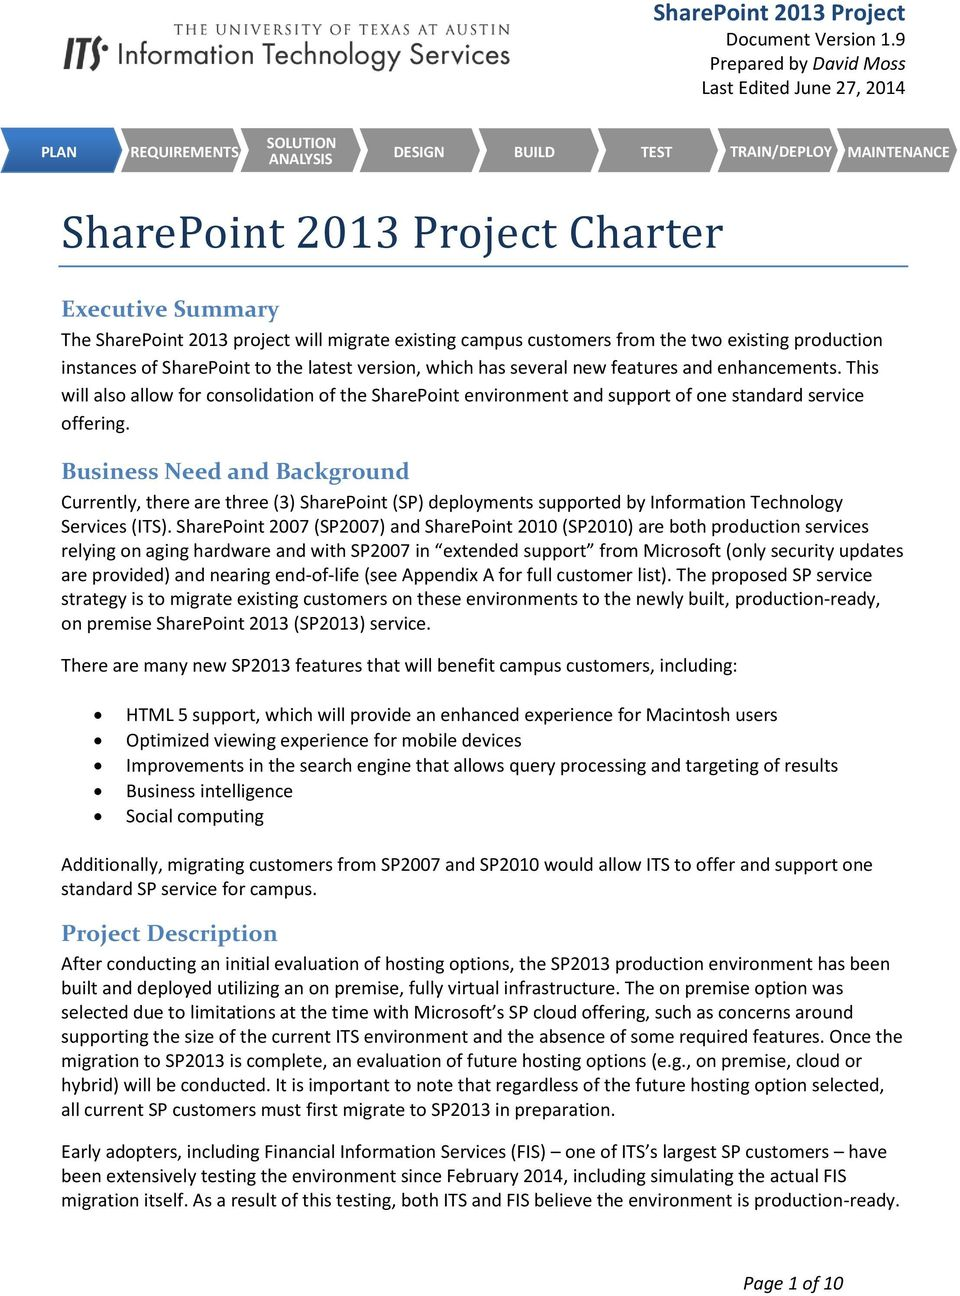 SharePoint 2013 Project Charter - PDF